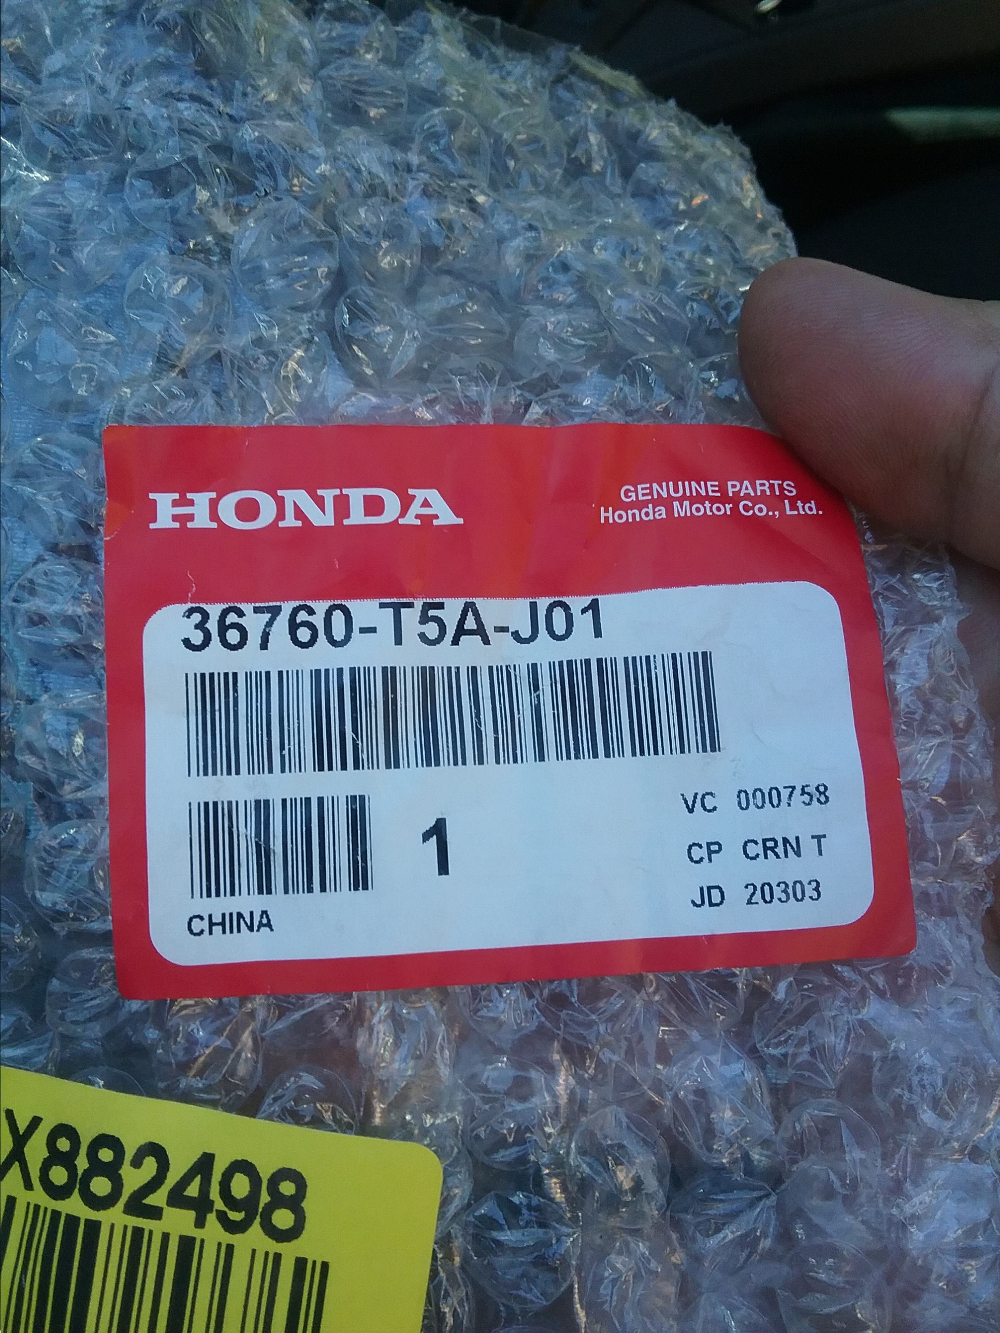 Honda Fit 2016, blue clutch interlock switch, Honda part number is 36760-T5A-J01 switch assy, clutch (clutch pedal position switch A). Photo 9 by Don Tai